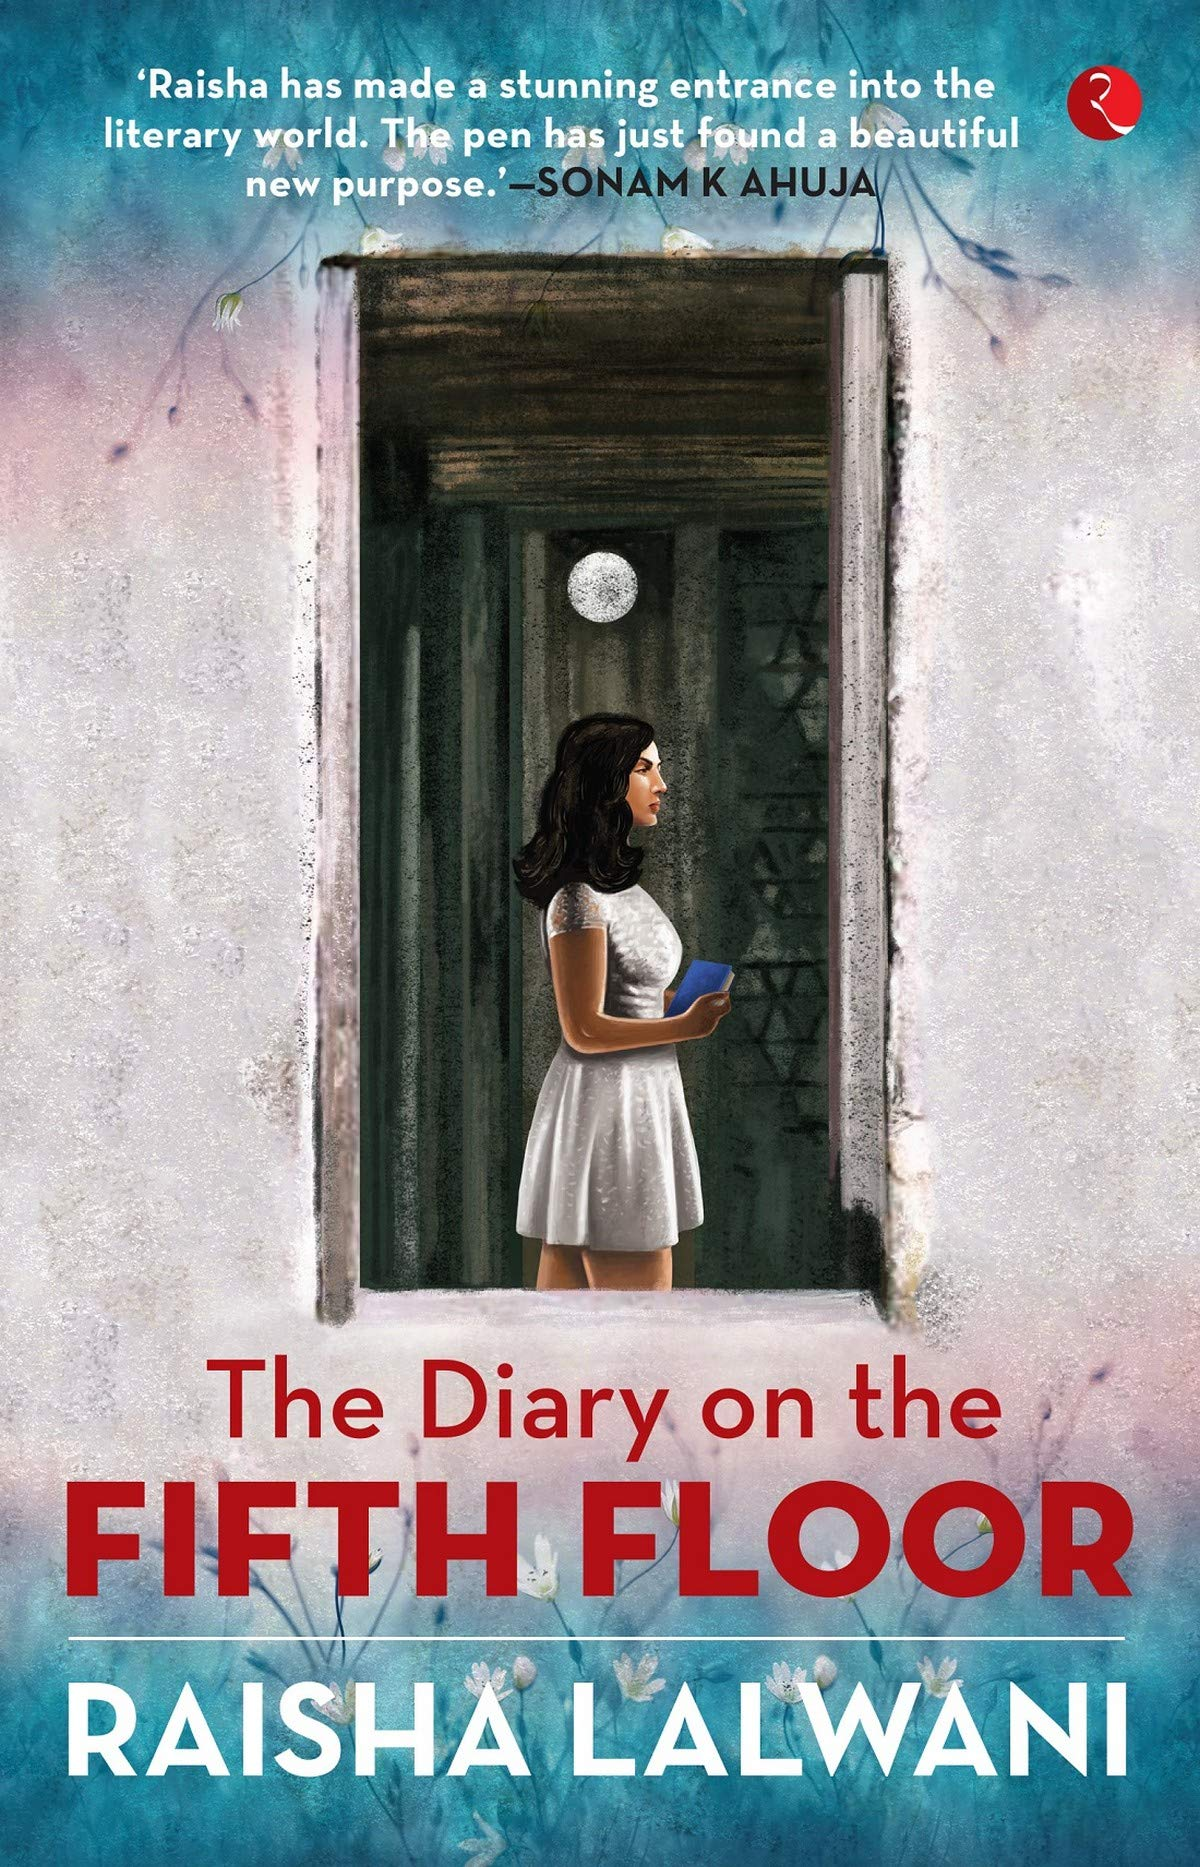 Buy The Diary on the Fifth Floor Book Online at Low Prices in India | The  Diary on the Fifth Floor Reviews & Ratings - Amazon.in